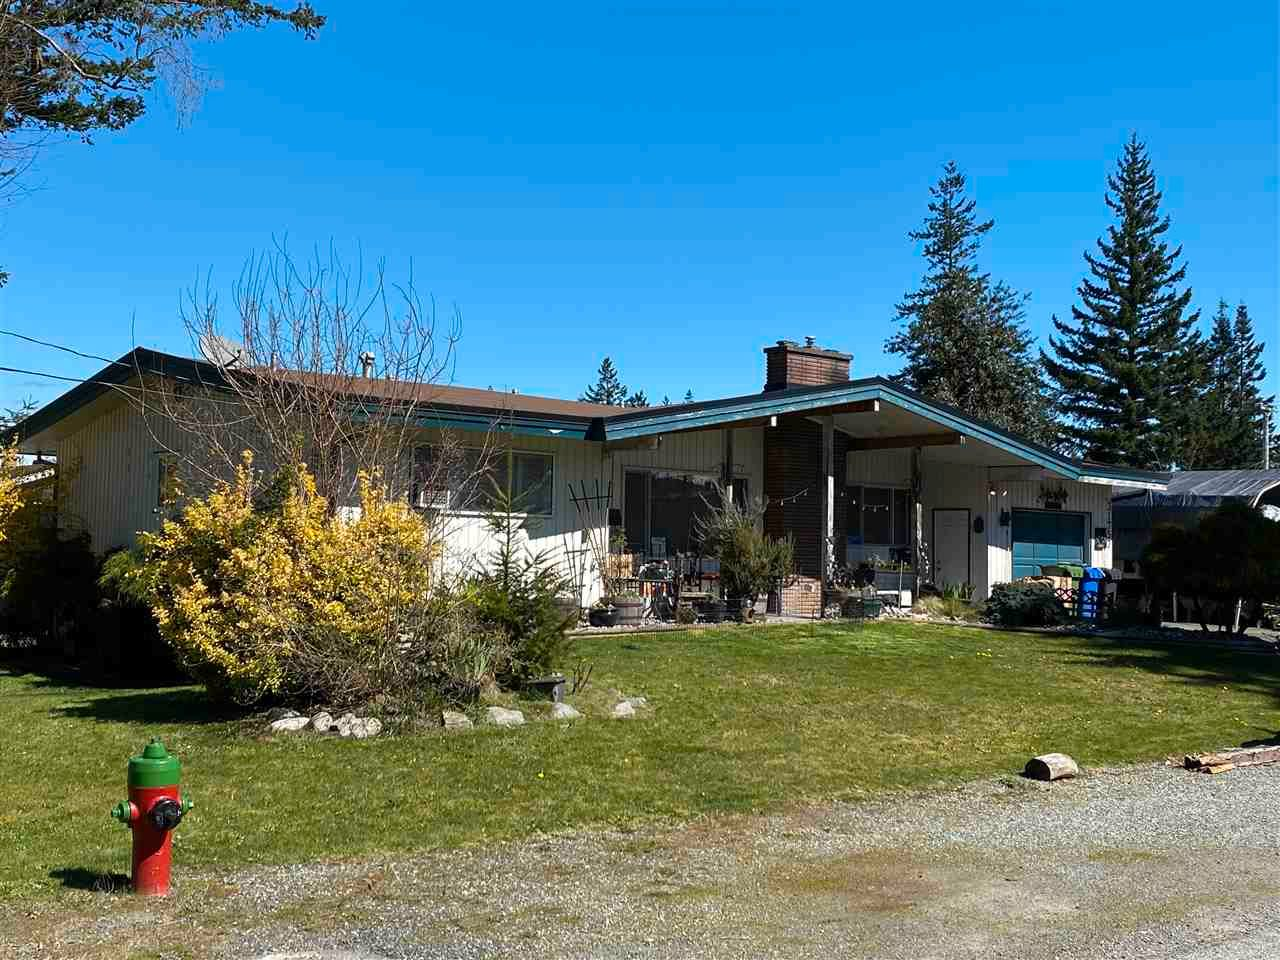 Main Photo: 31757 UPLAND Crescent in Abbotsford: Abbotsford West House for sale : MLS®# R2565035